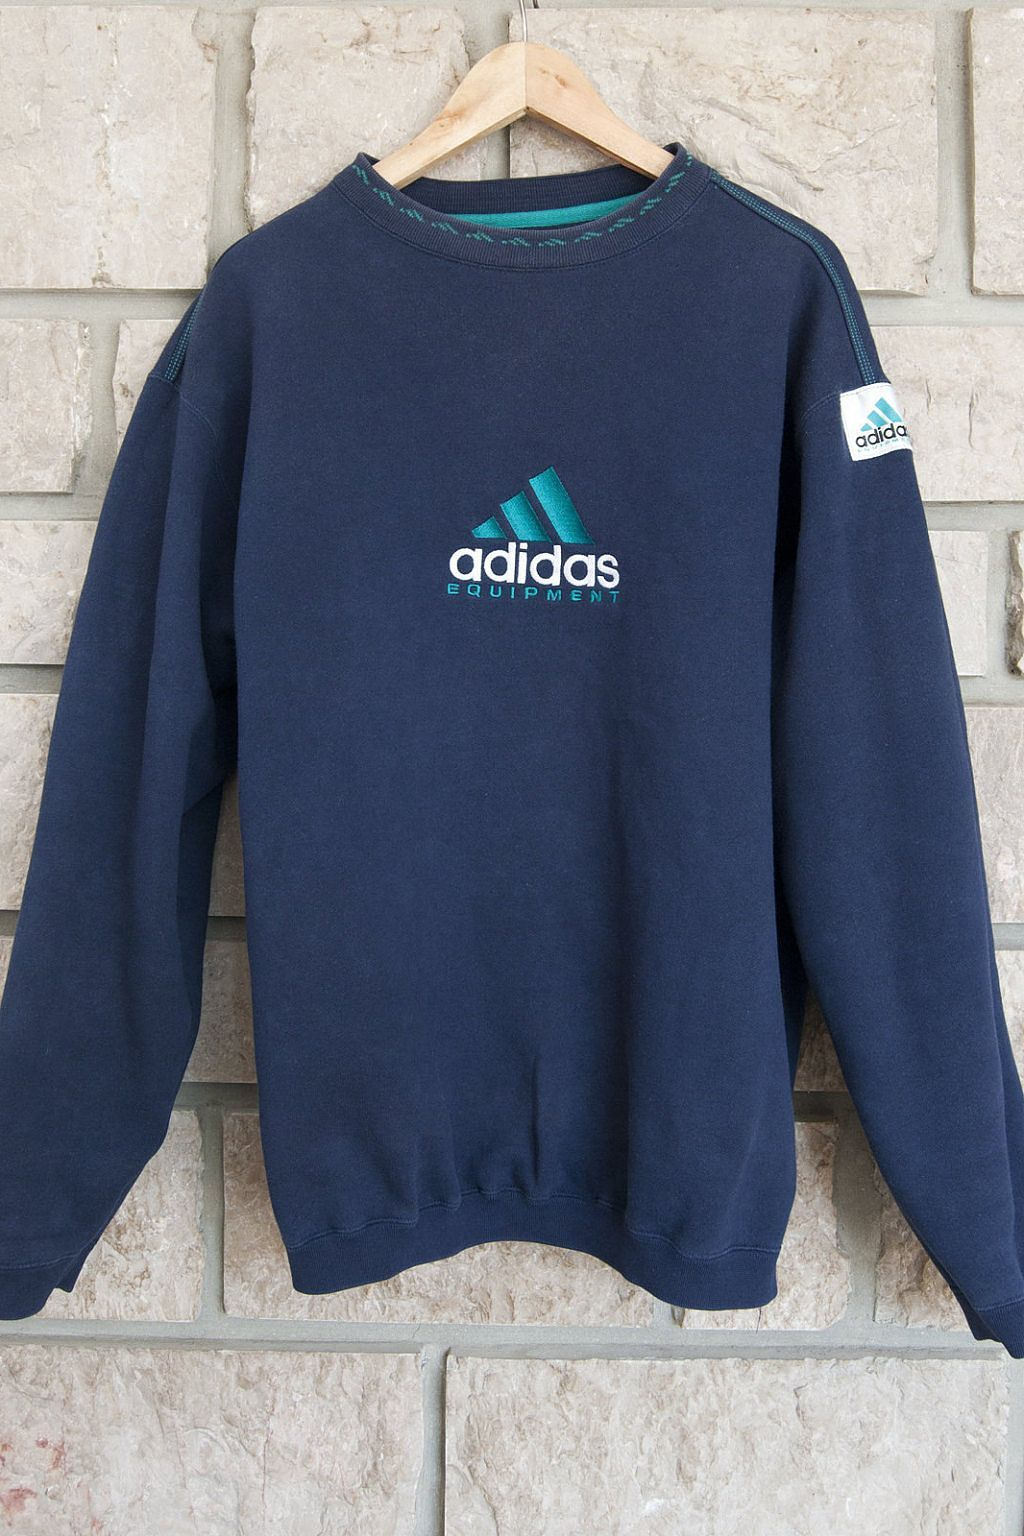 Pin By David On Dr In 2021 Adidas Sweatshirt Outfits Sweater Outfits Men Vintage Sweatshirt [ 1536 x 1024 Pixel ]